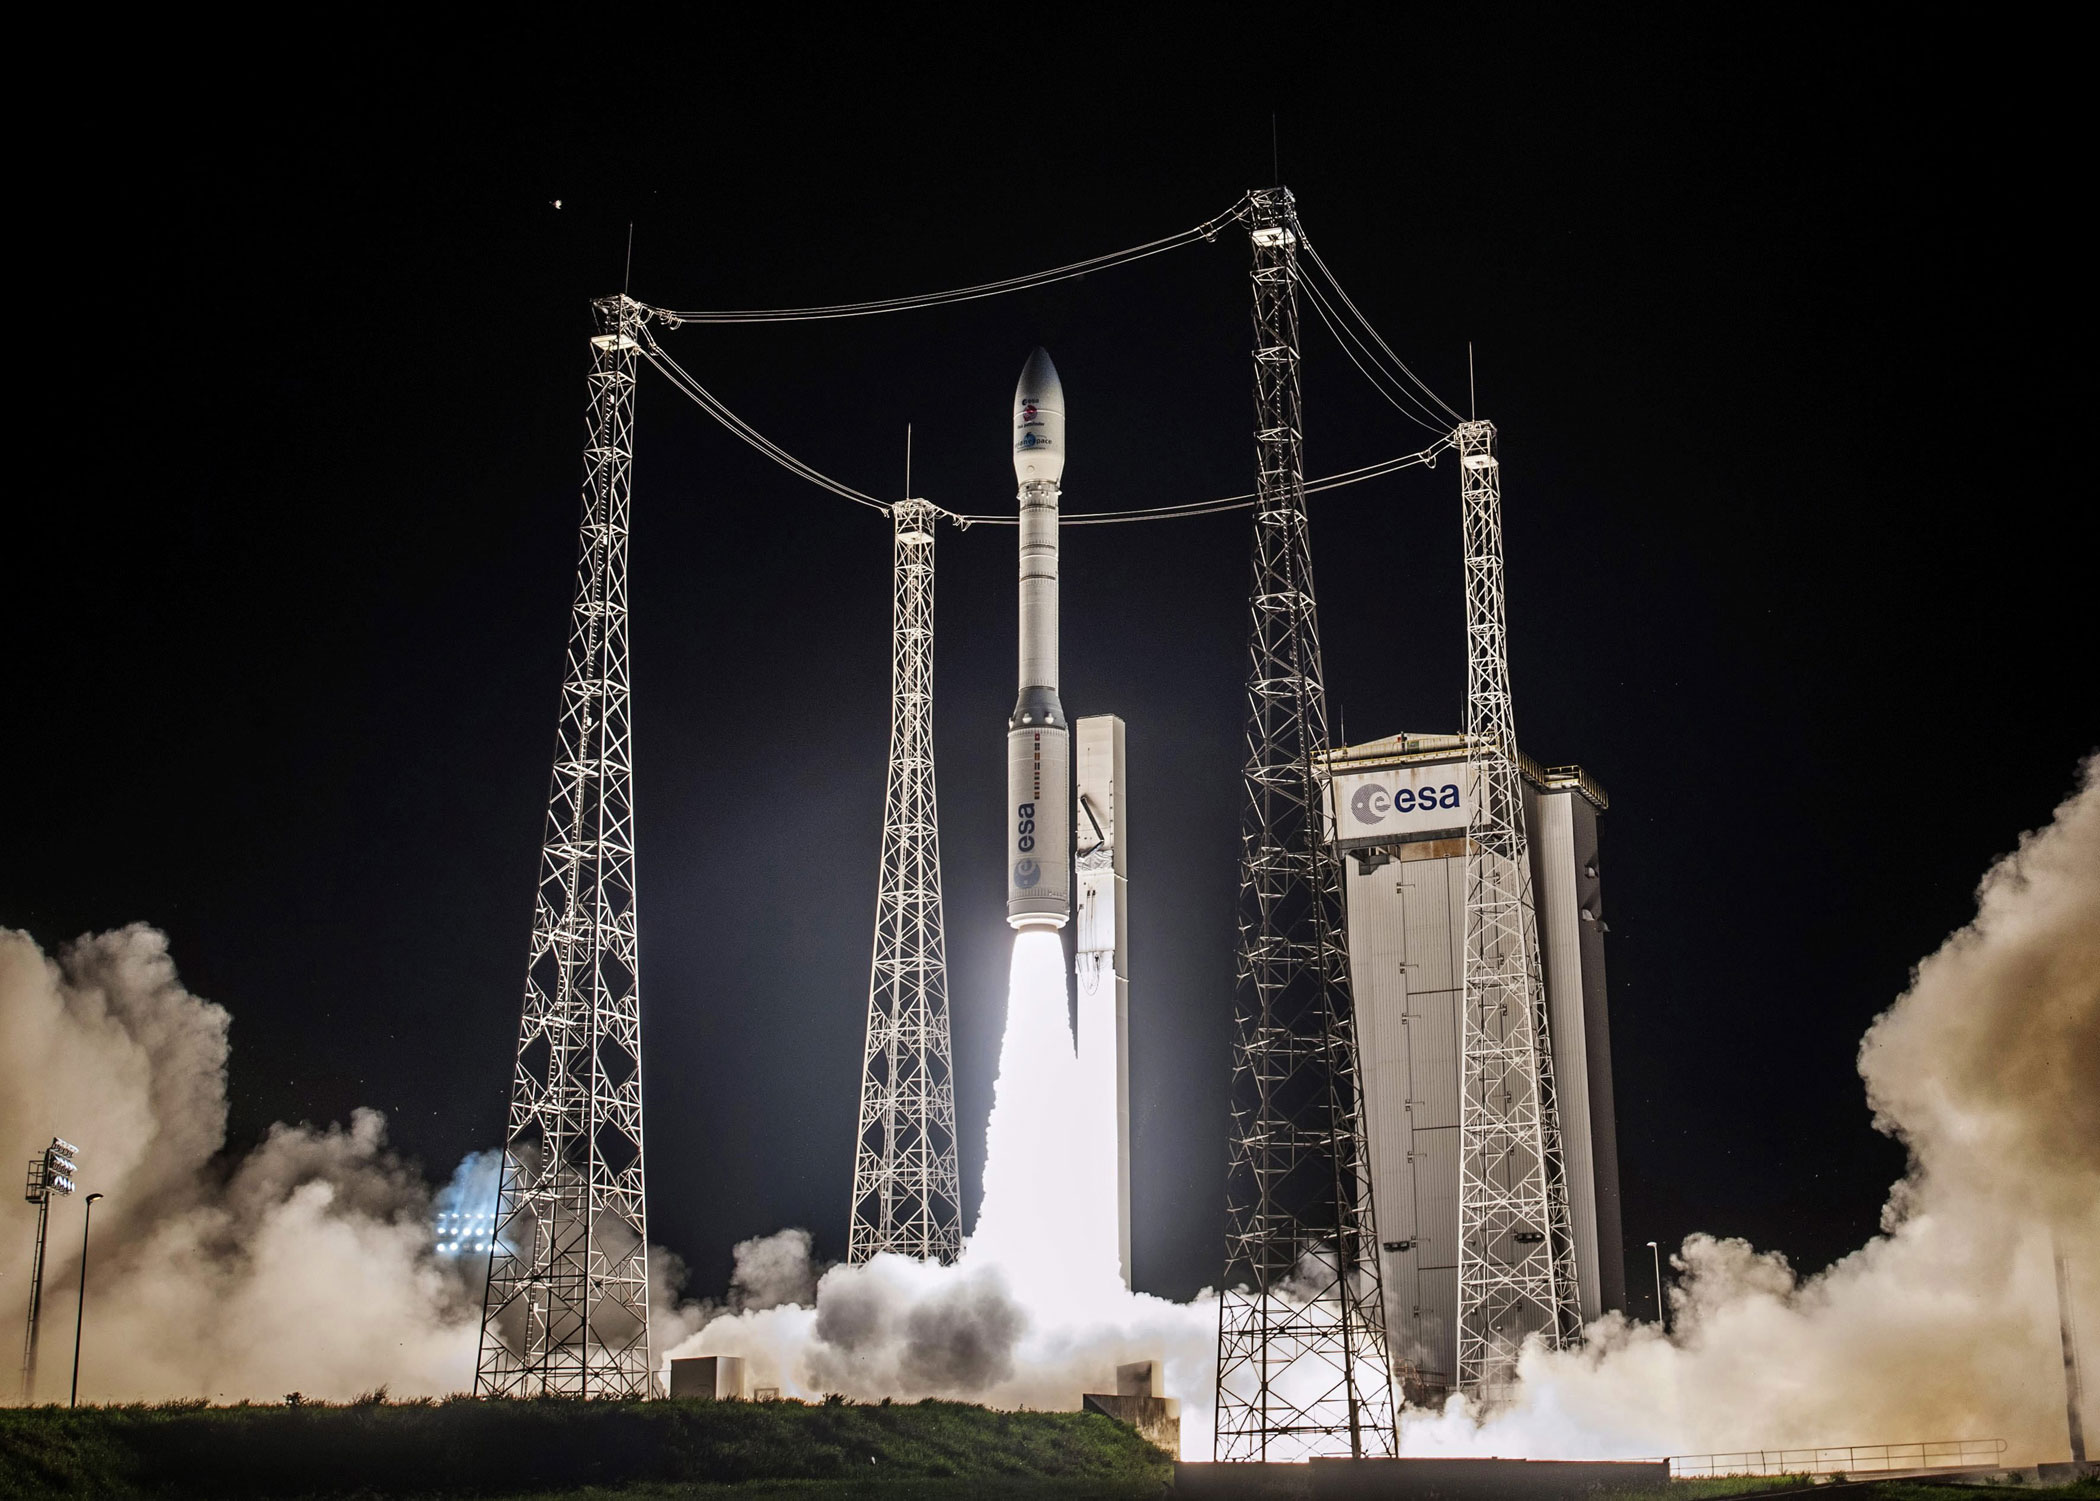 A Vega rocket lifts off from French Guiana on Dec. 3 2015, carrying the European Space Agency's LISA Pathfinder spacecraft, which will test methods for detecting gravity waves.